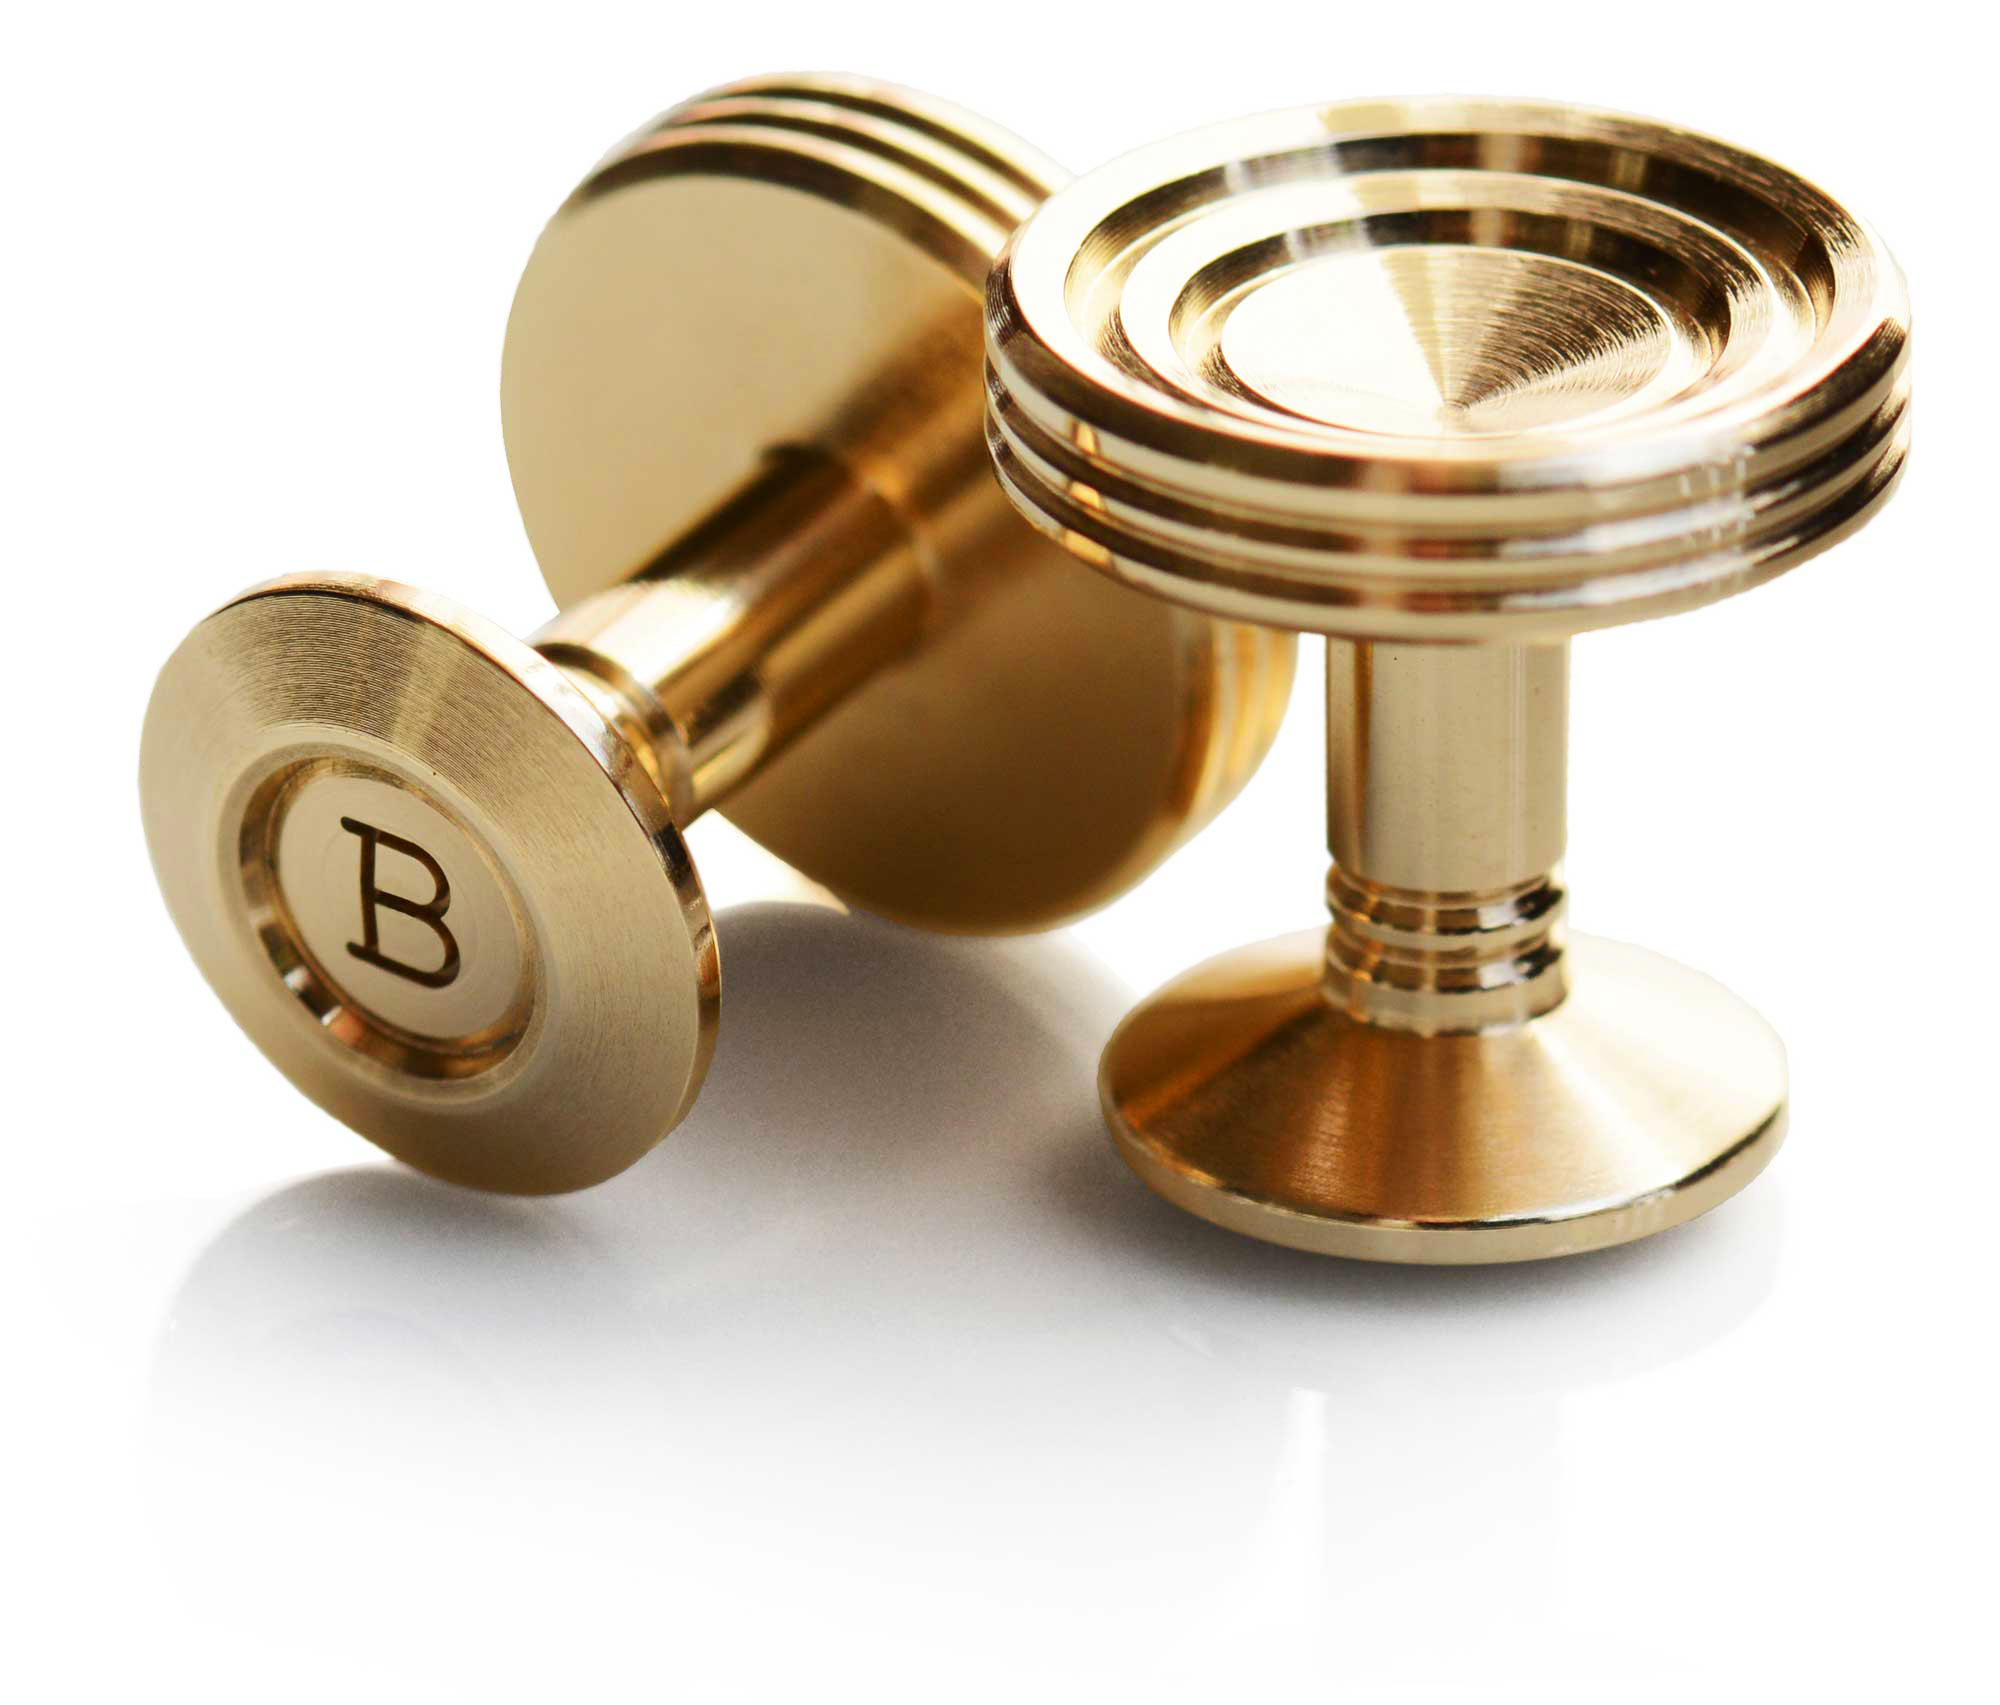 Buchanan & Wilmot St James cufflink in polished brass